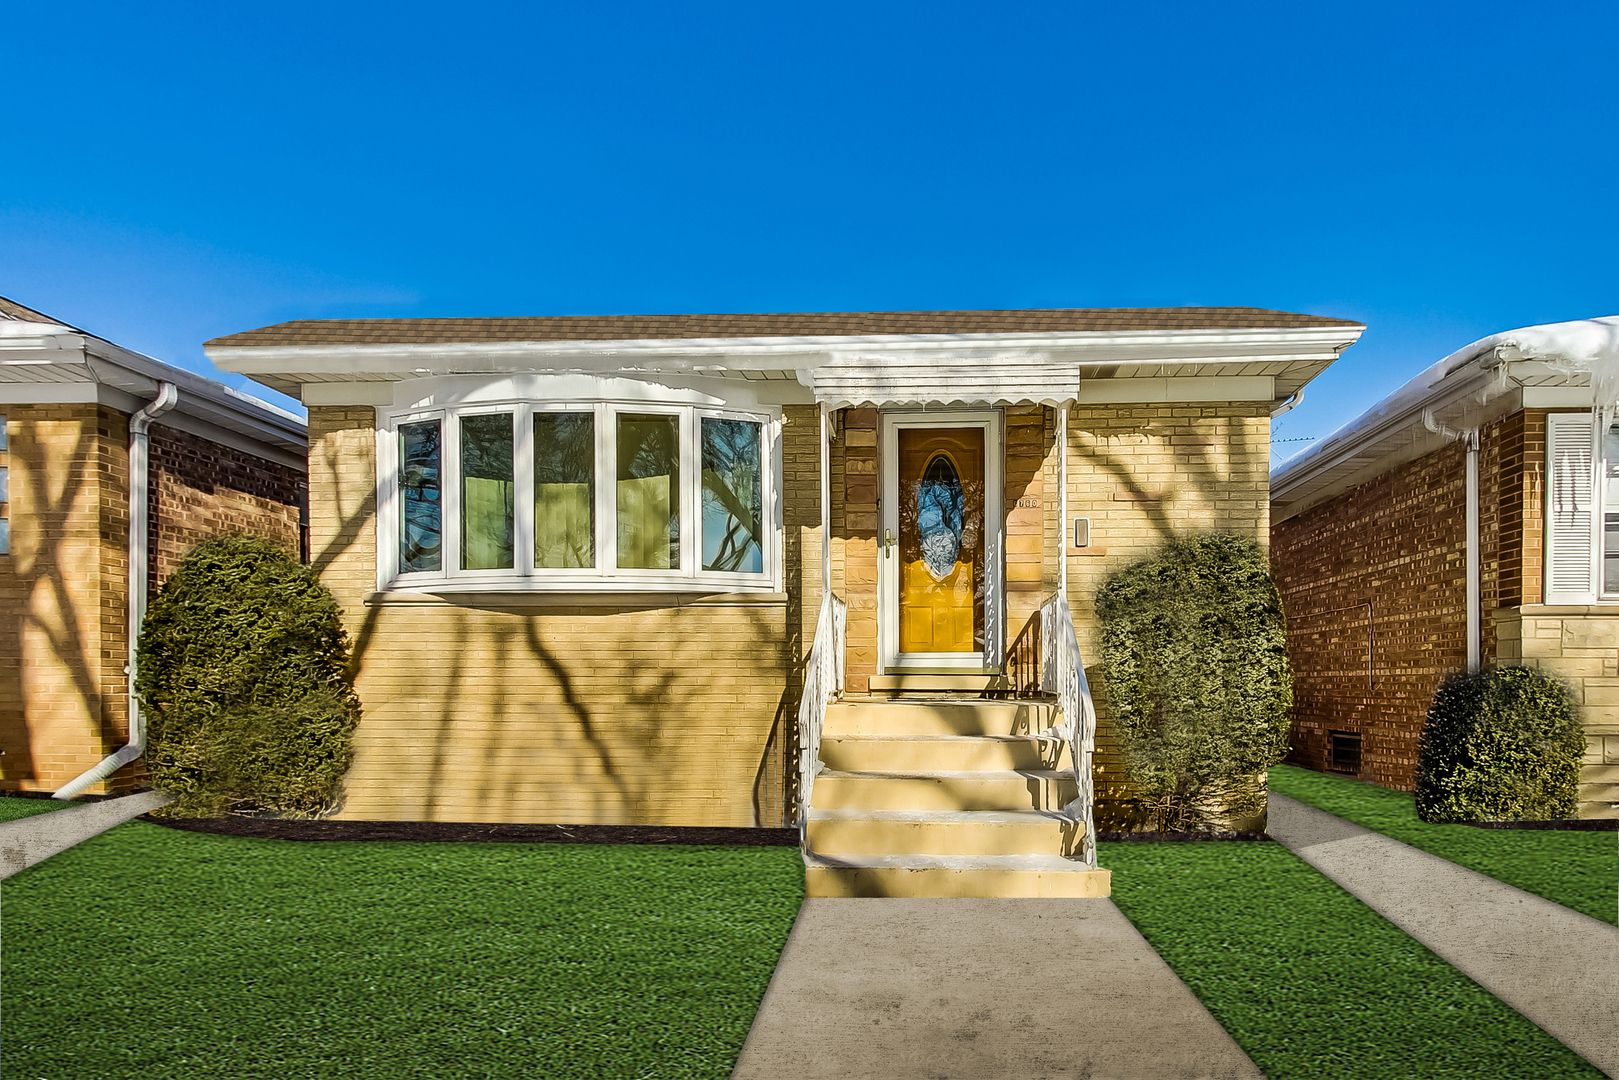 Main Photo: 6760 W Rascher Avenue in Chicago: CHI - Norwood Park Residential for sale ()  : MLS®# 10999741